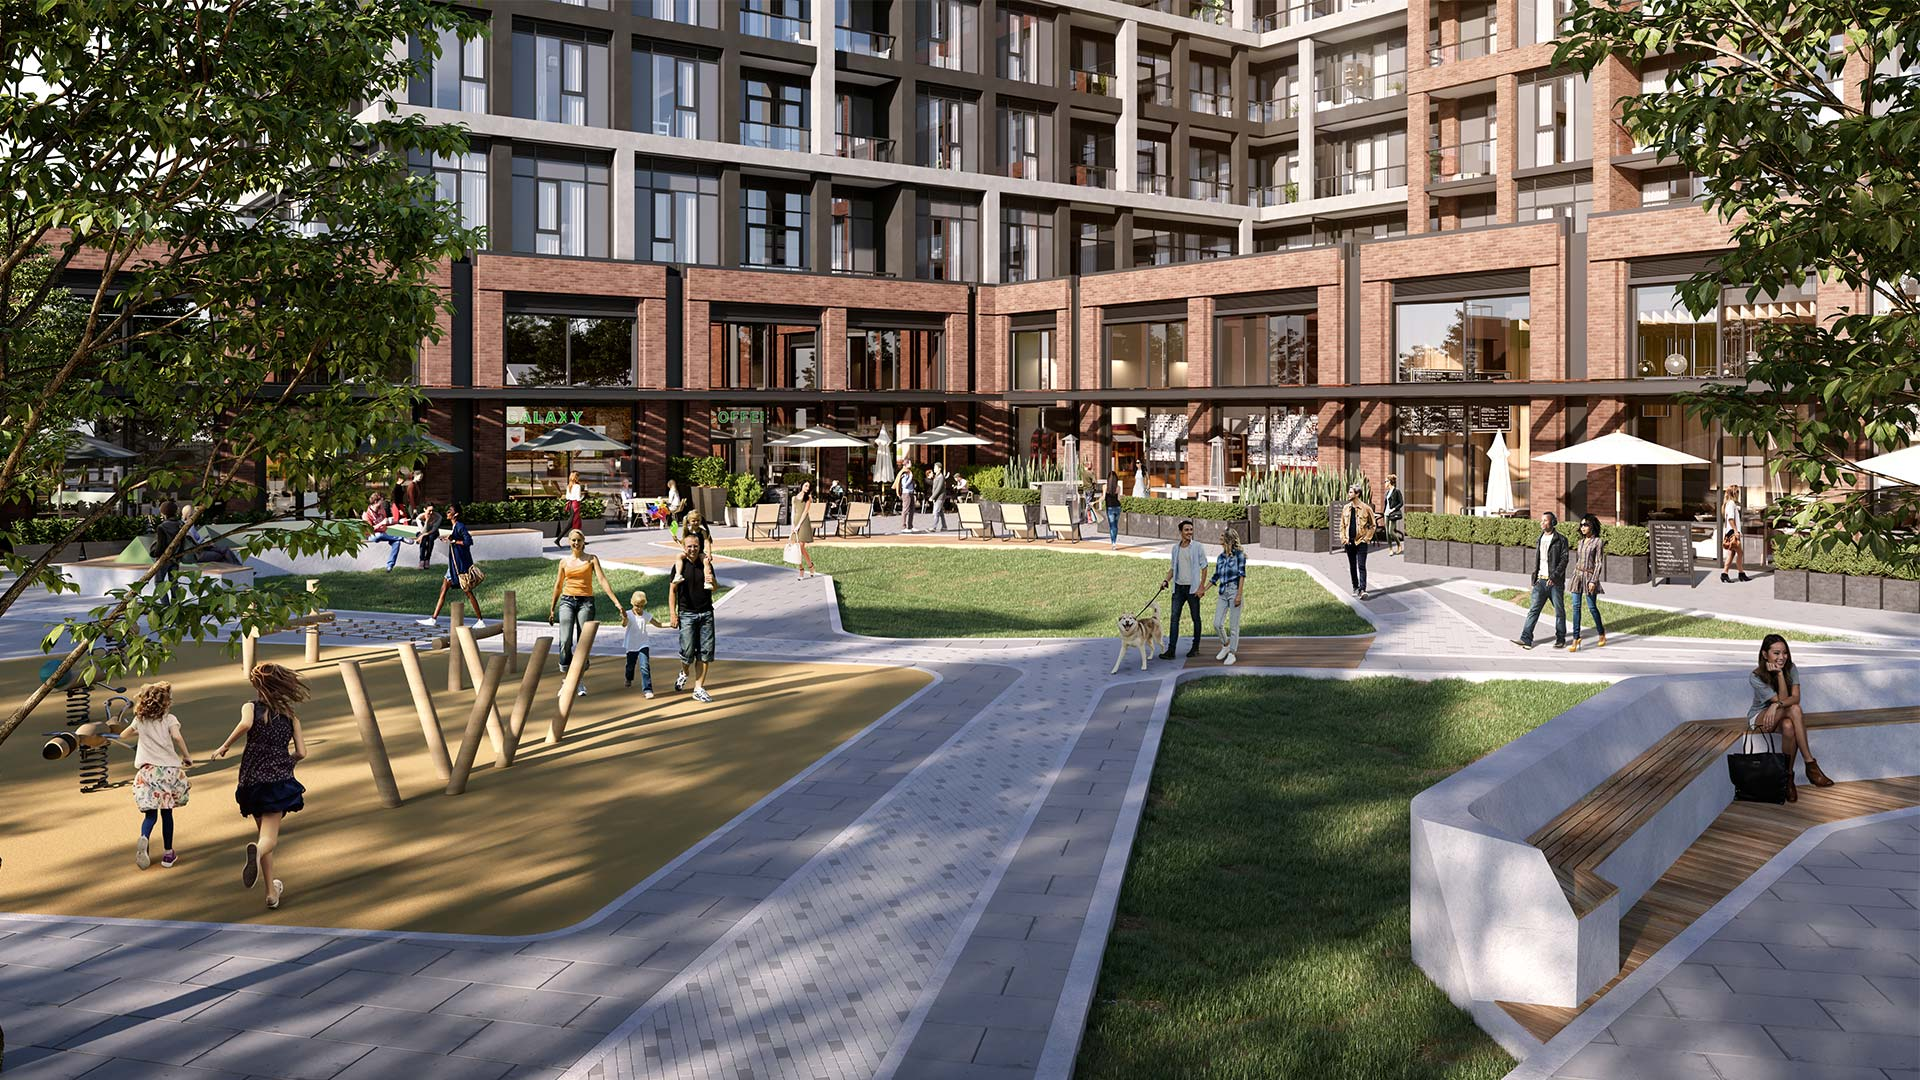 New city park coming downtown Toronto